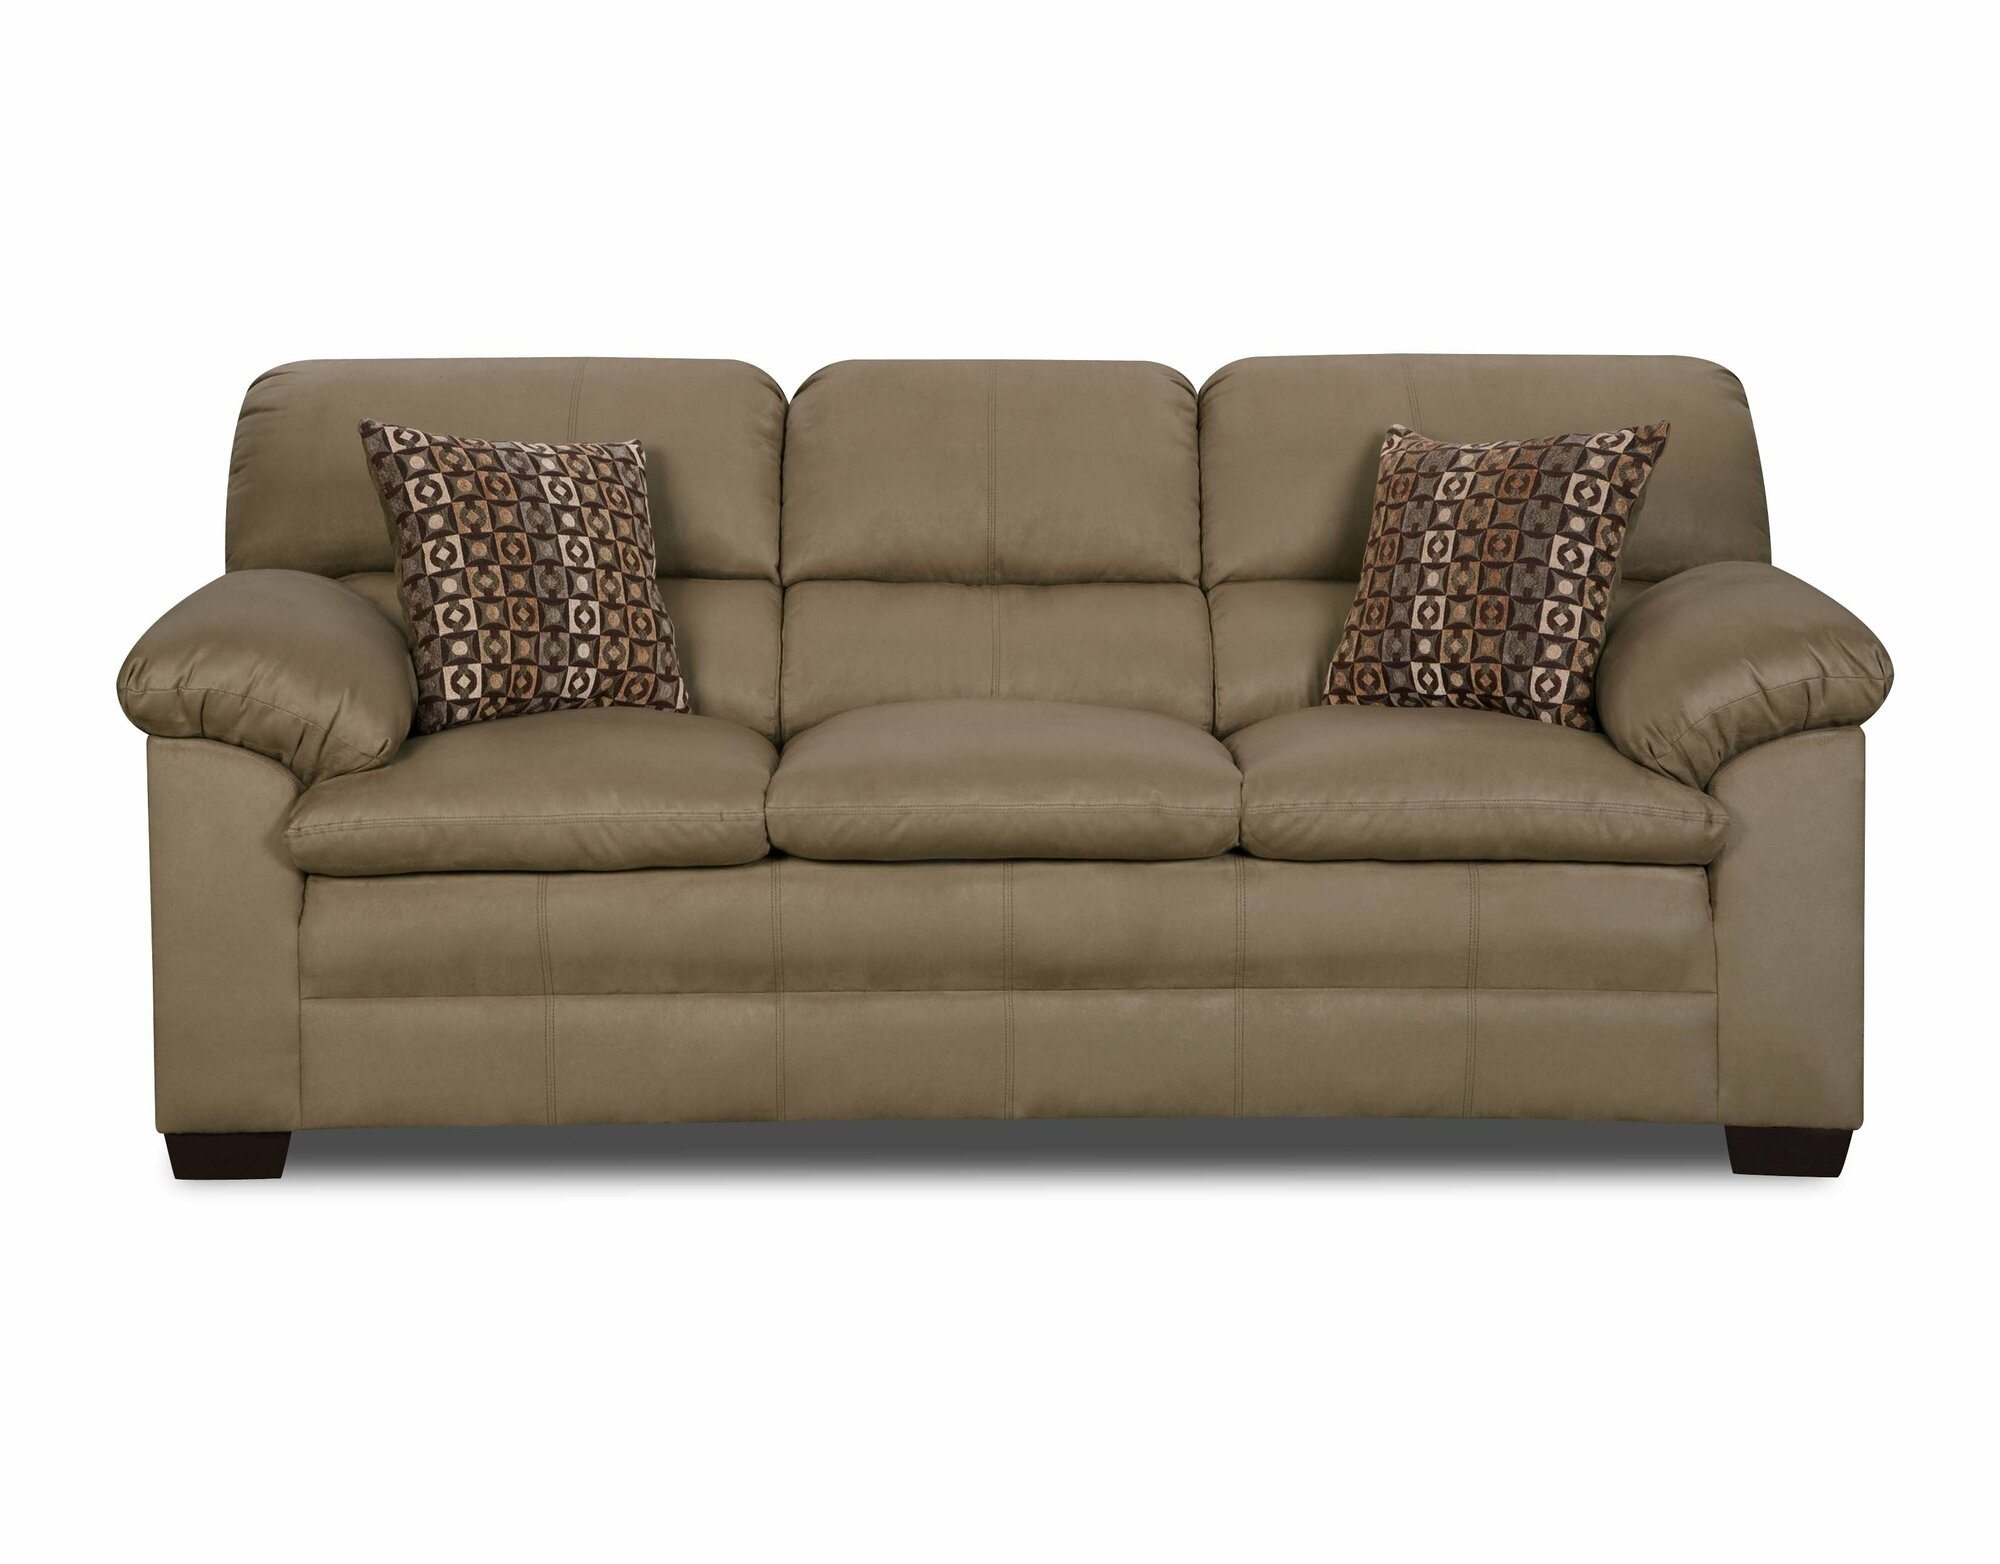 Pay Monthly Sofas No Credit Check 2017 Sofa Design